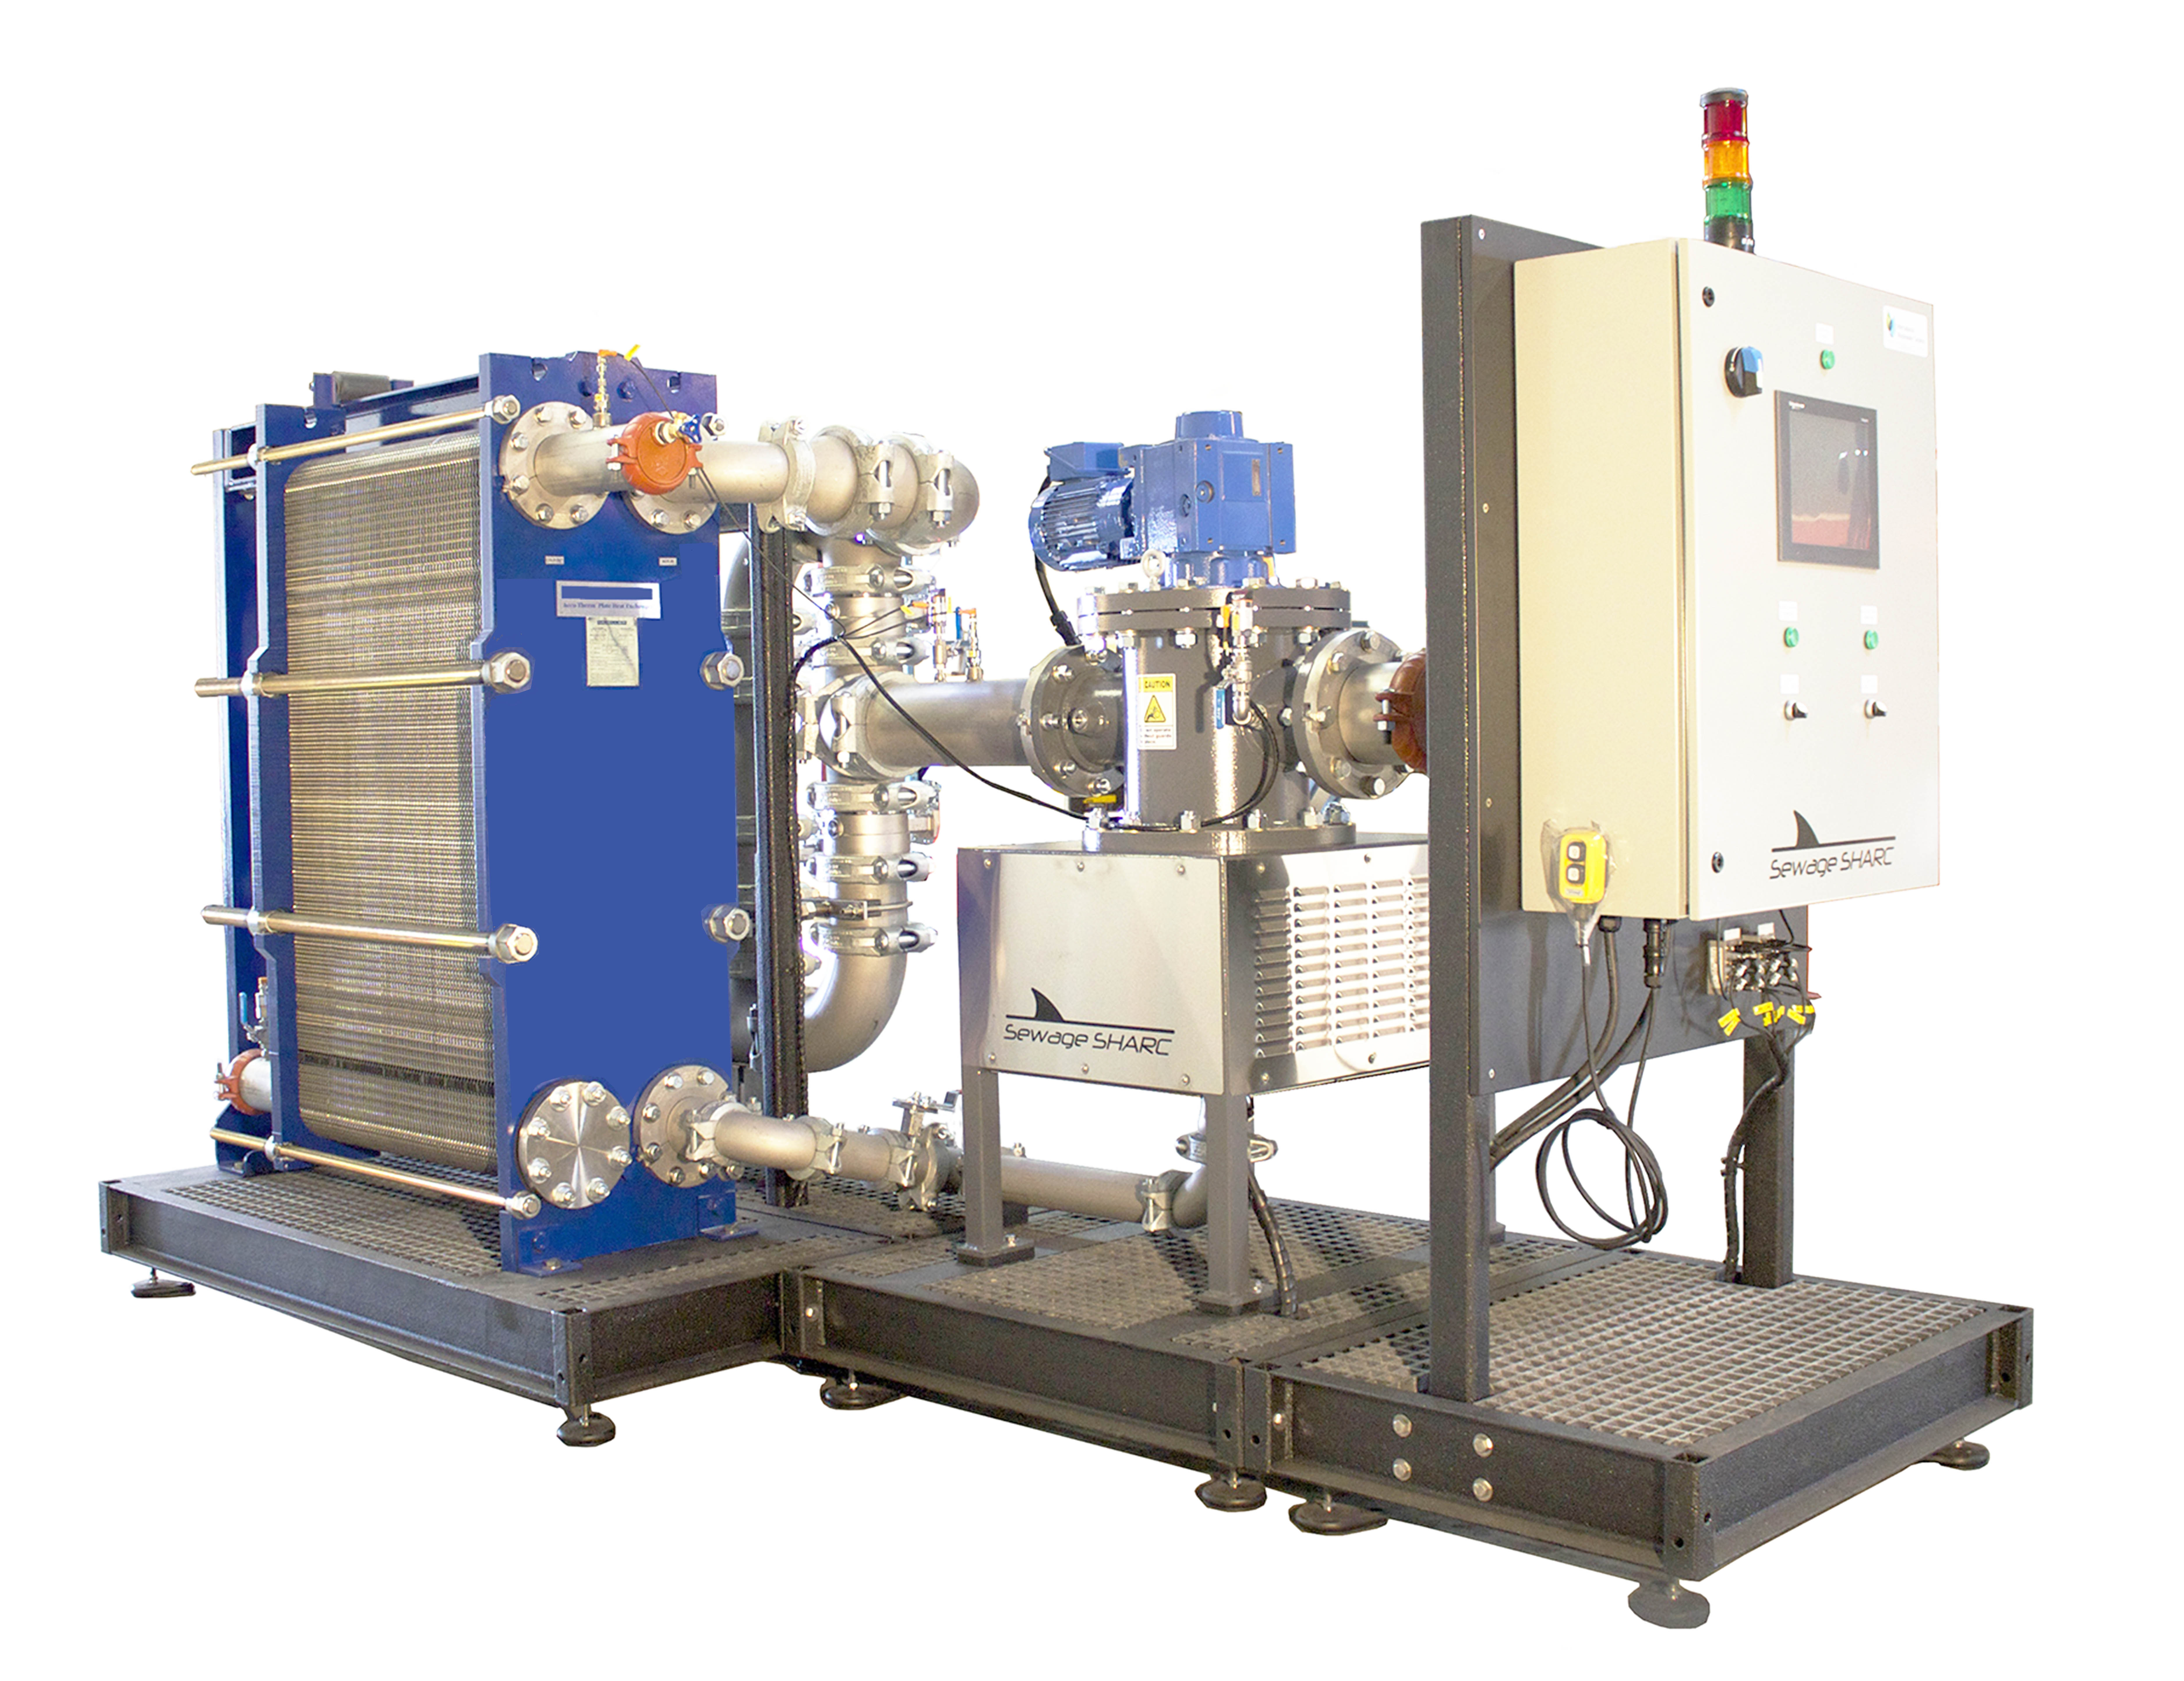 File Sharc Wastewater Heat Recovery System Jpg Wikipedia